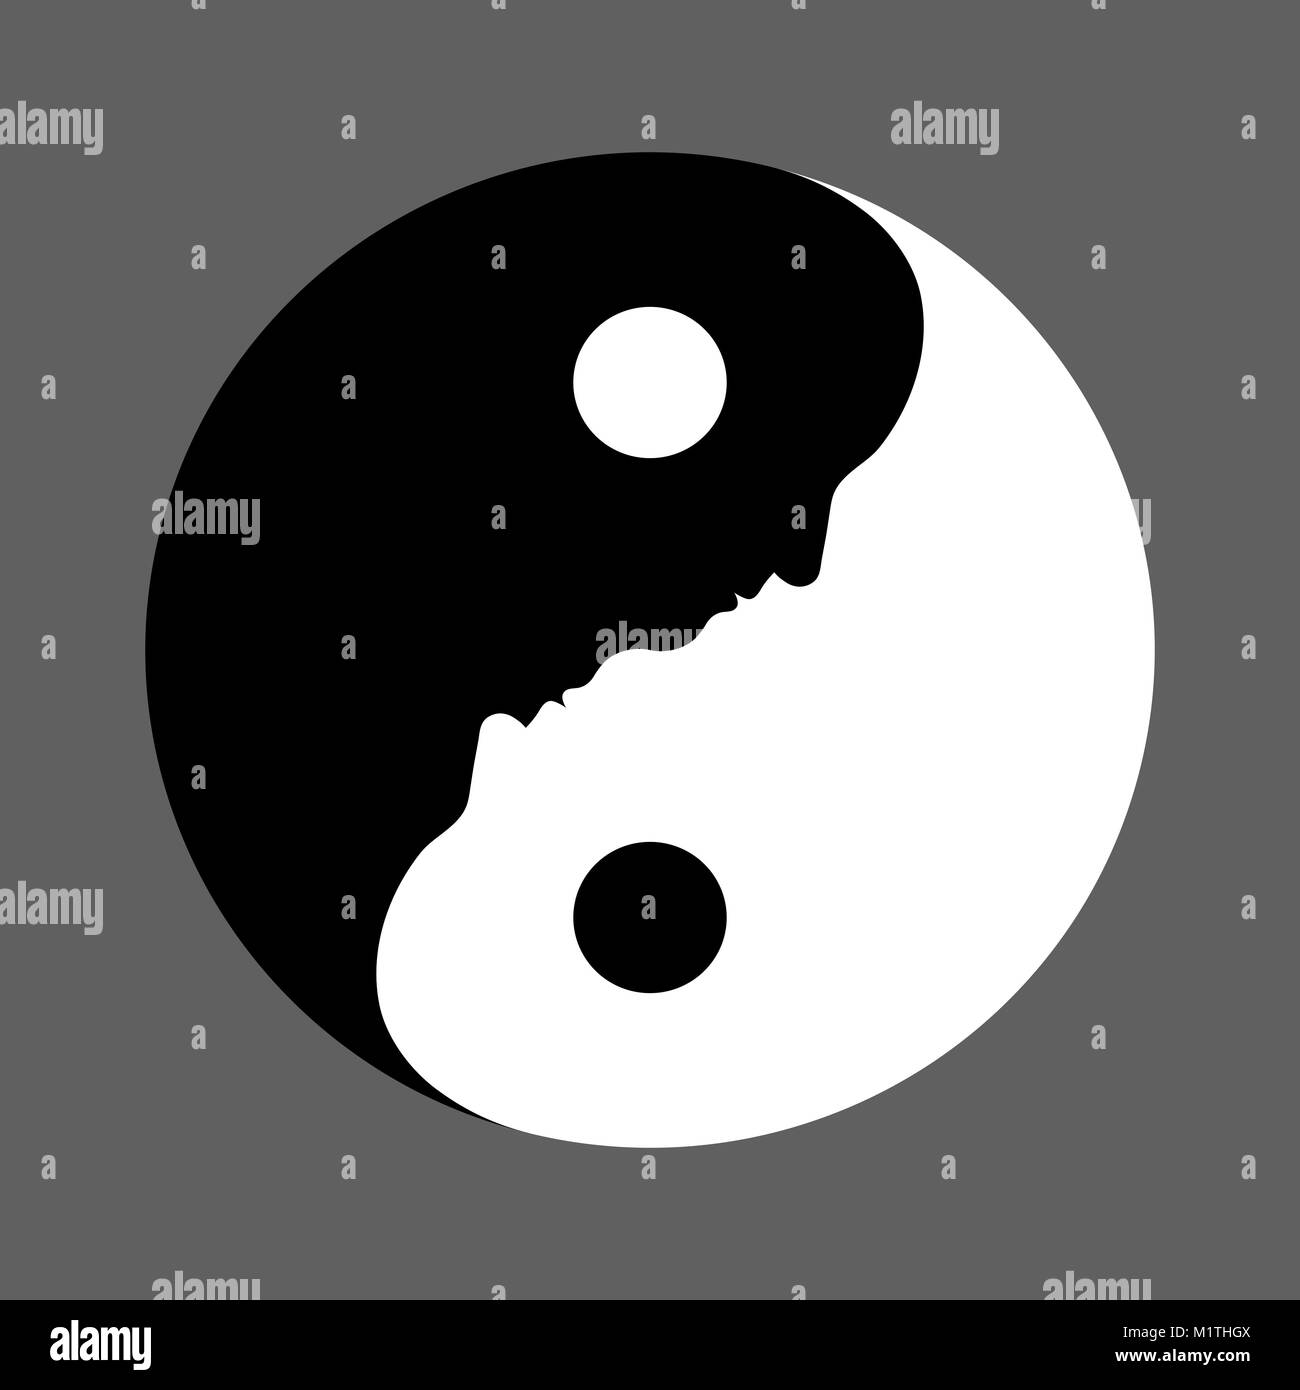 Black And White Yin Yang Symbol With Faces Depicting The Balance